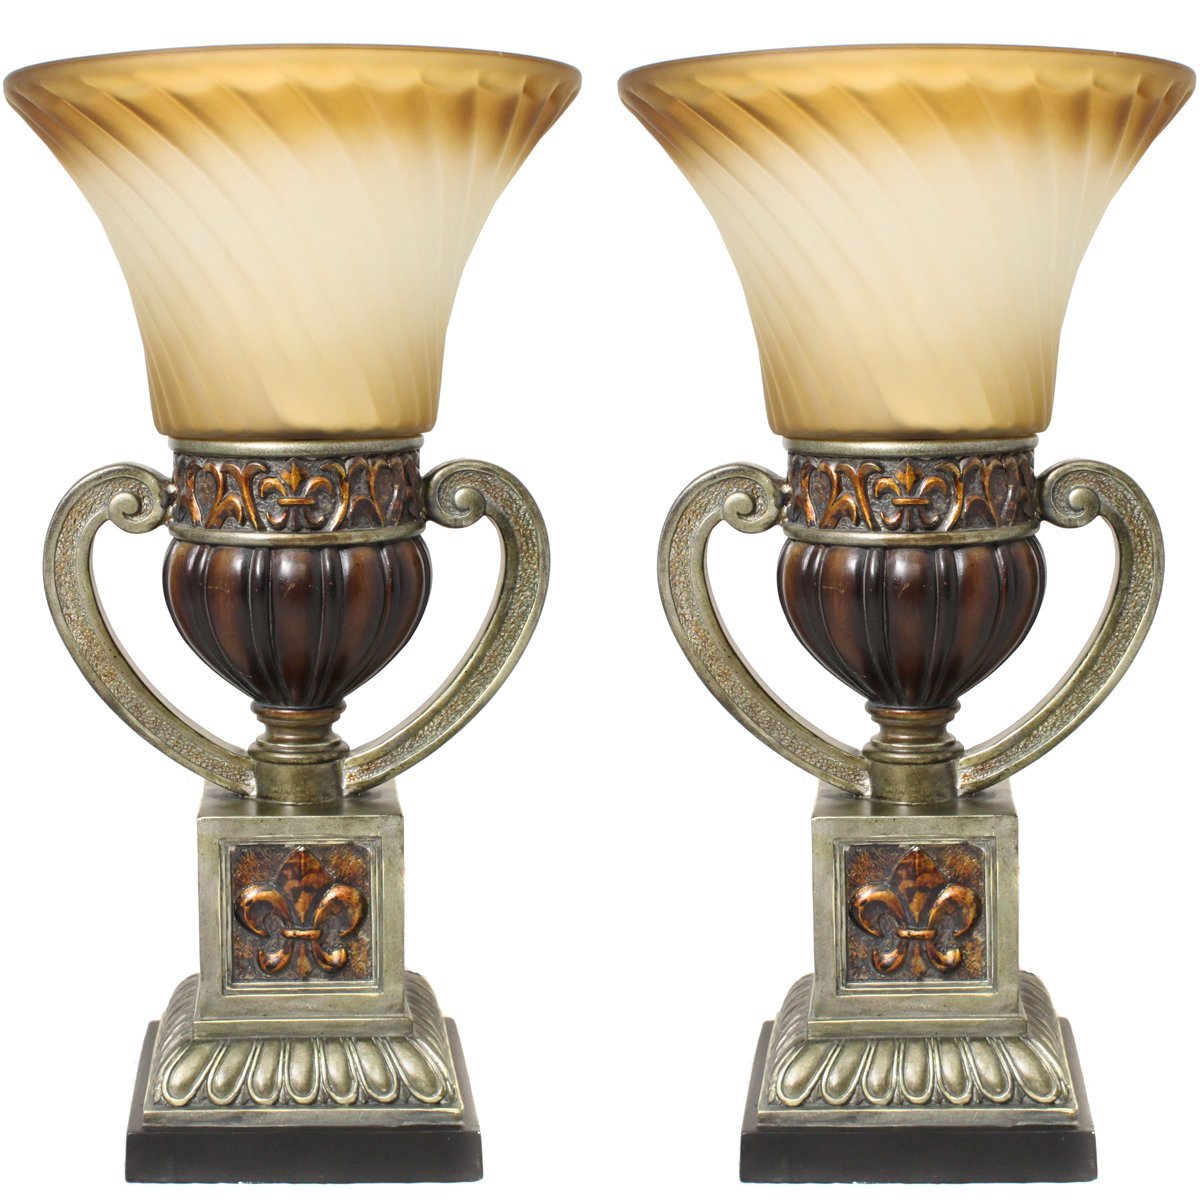 Urban Designs Imported Parisian Torchiere 22'' Uplight Table Lamp - Set of 2 Brown